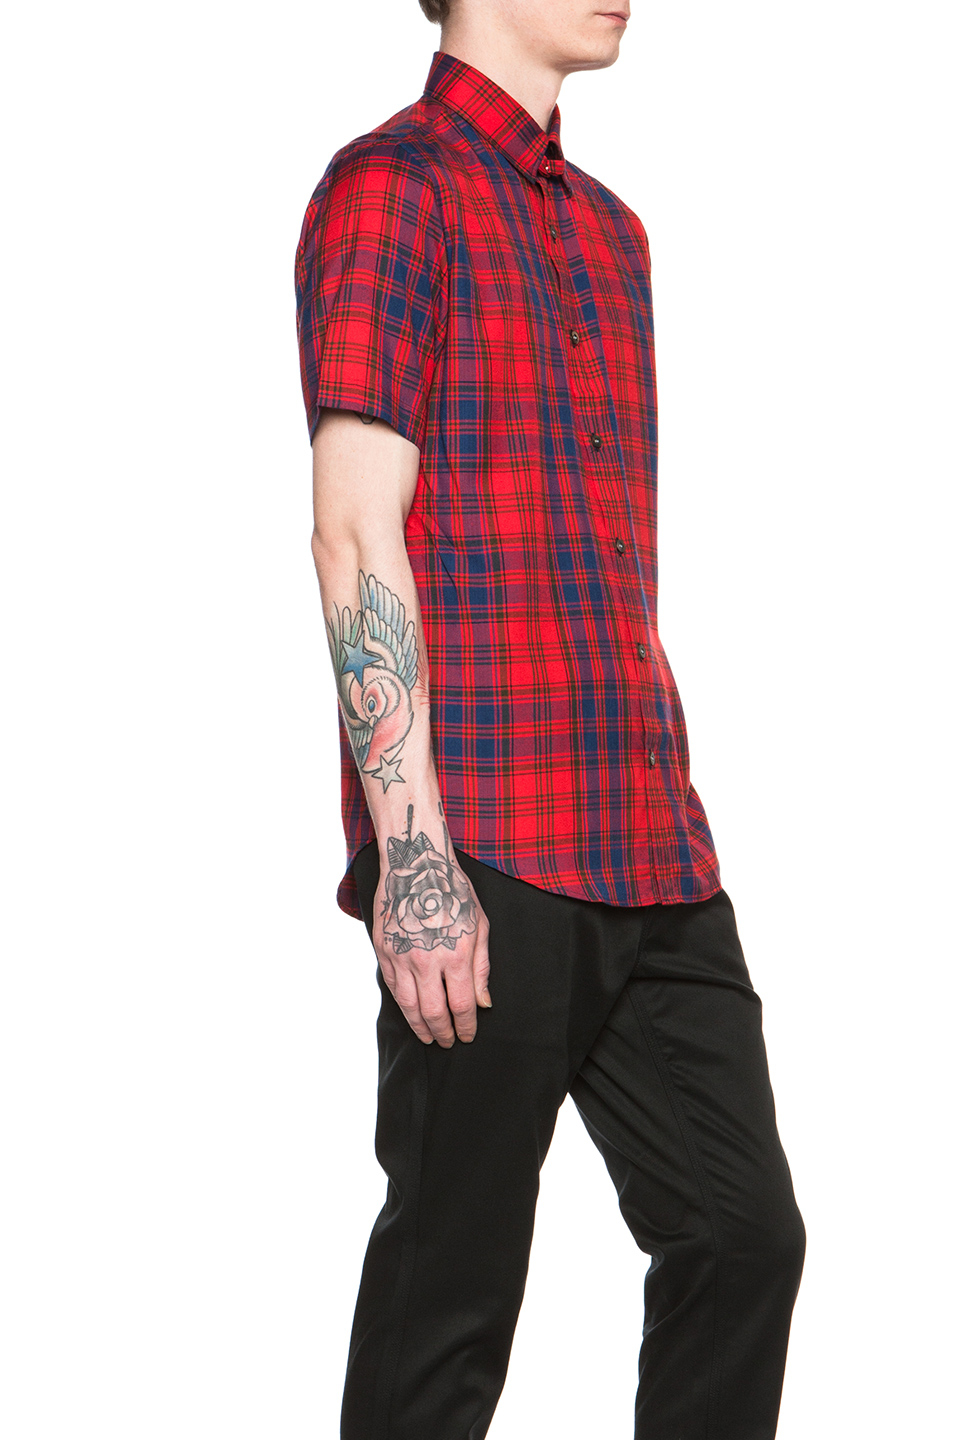 N hoolywood men 39 s short sleeve plaid shirt in red for men Short sleeve plaid shirts